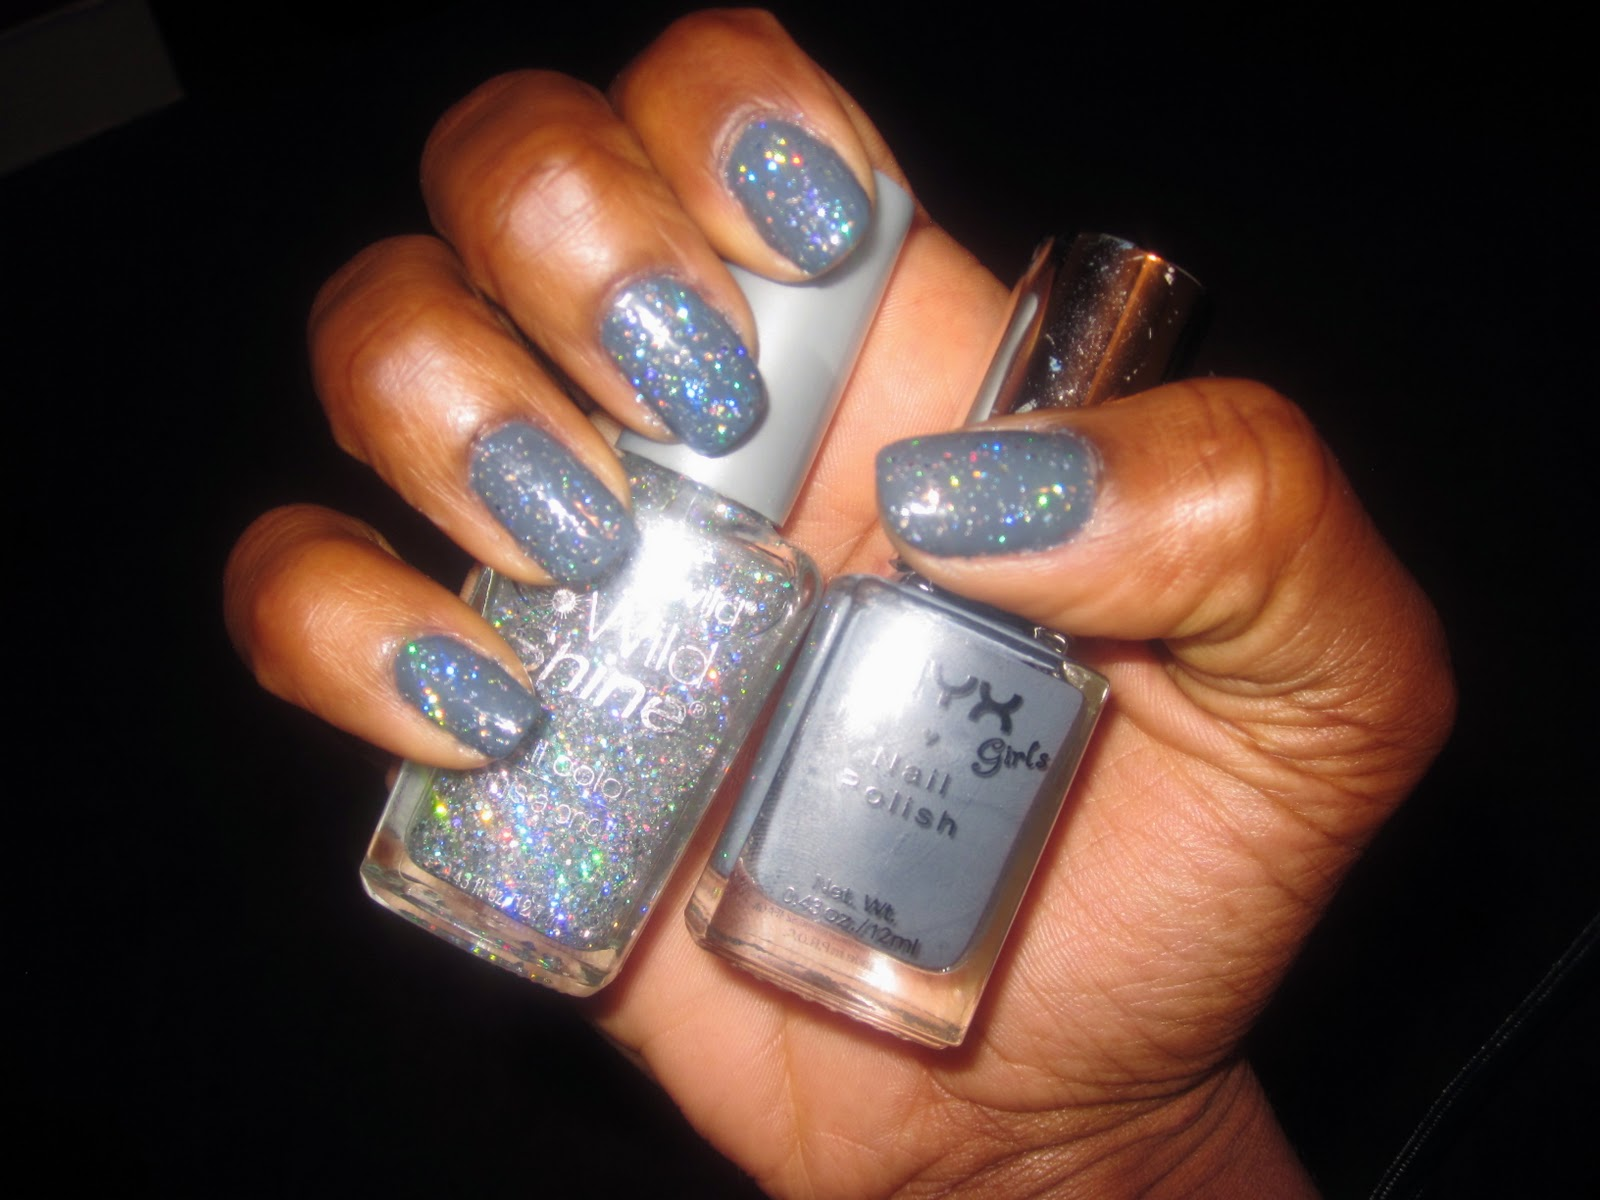 Manicure Mondays - Holiday Sparkle - The Gabe Fix by Gabrielle Flowers